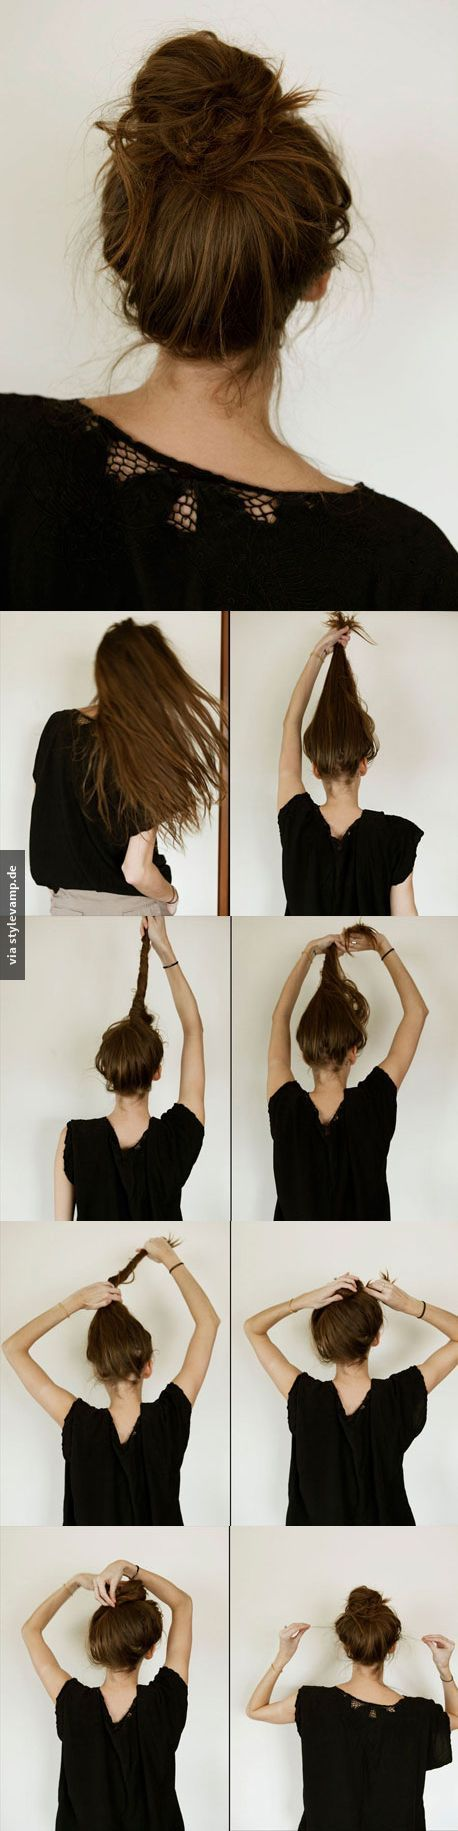 Der Perfekte Dutt 3 Long Hair Tutorial Hair Styles Hair Tutorial